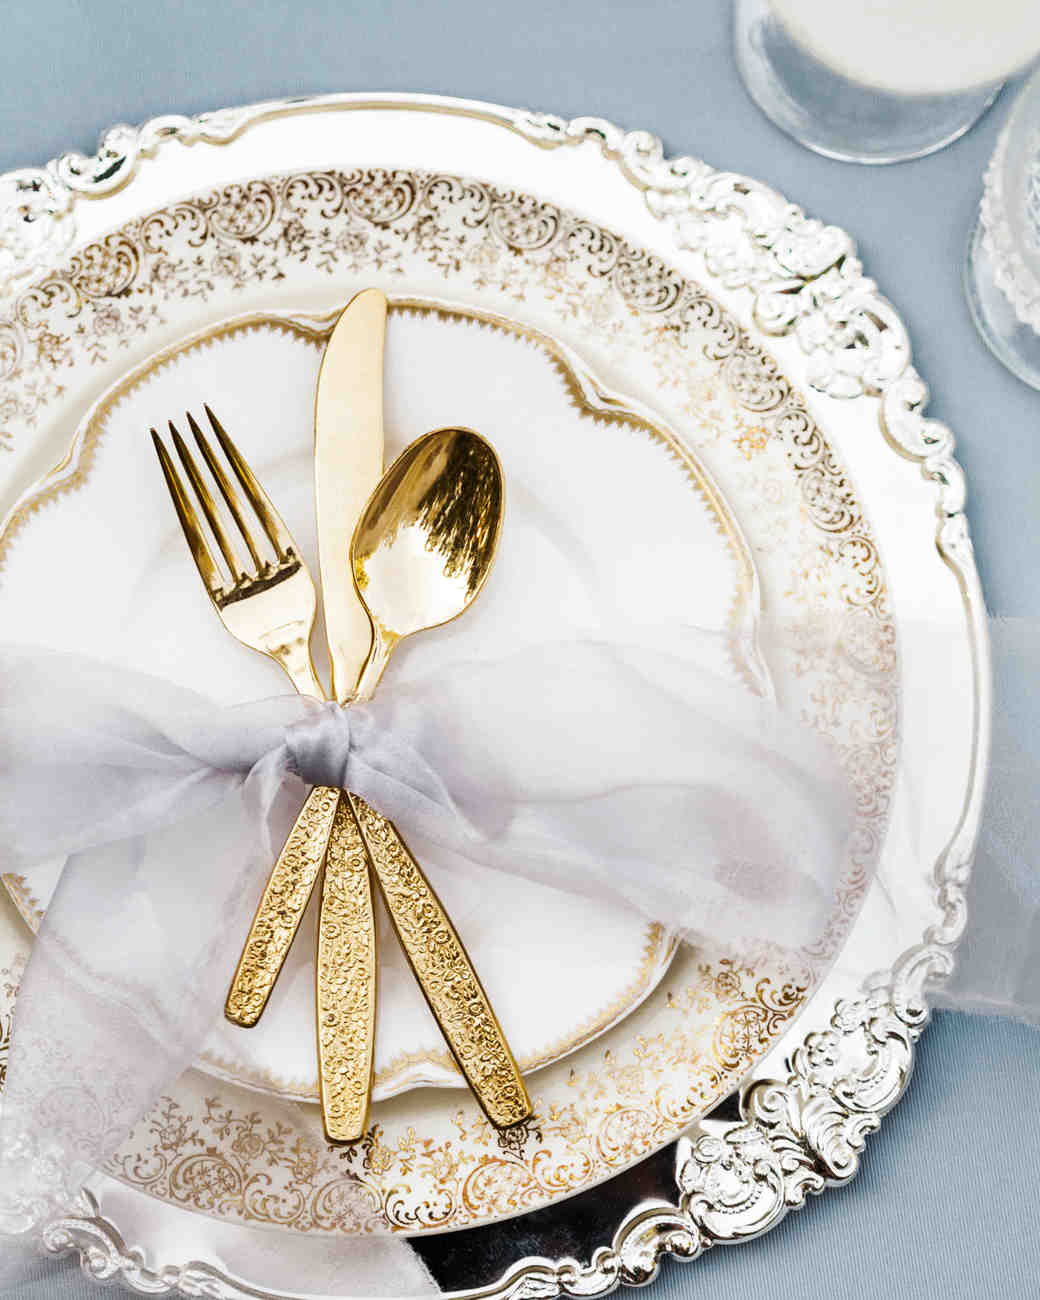 metallic wedding cuttlery and plates in place setting